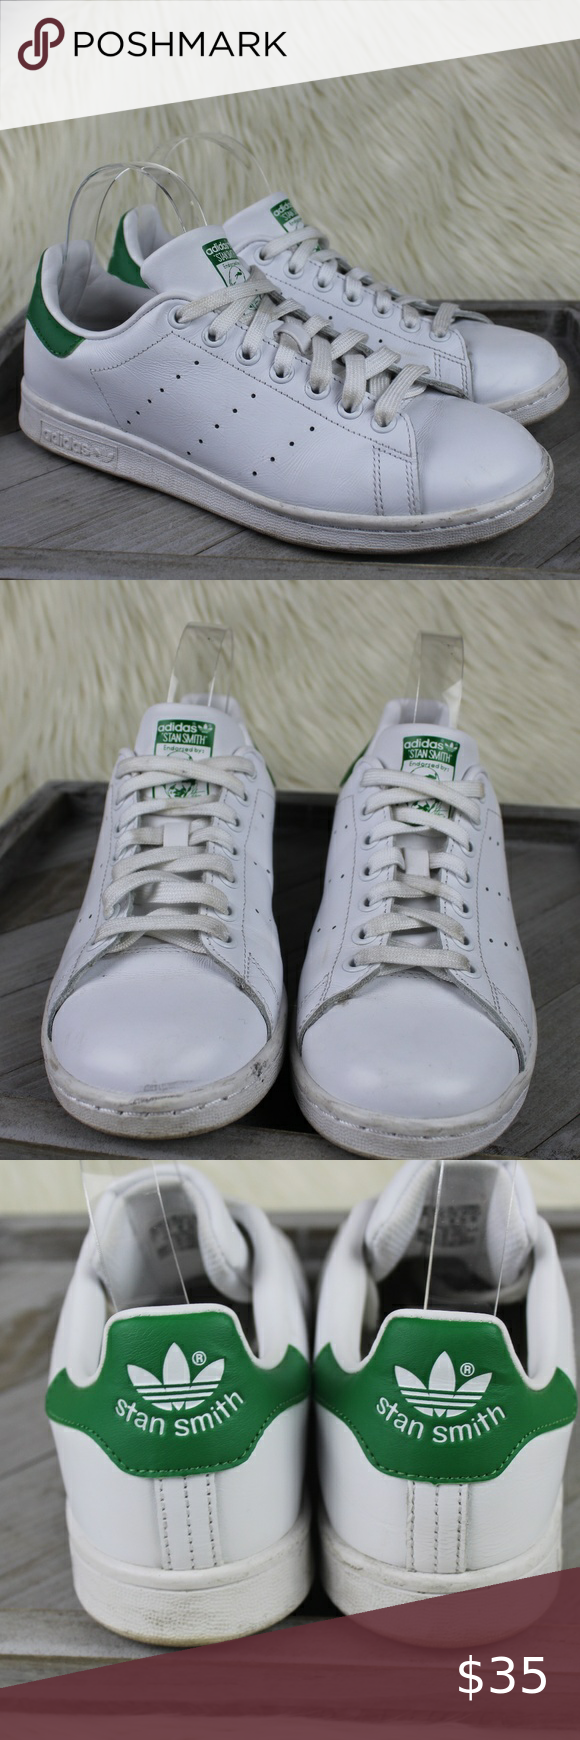 adidas stan smith cleaning